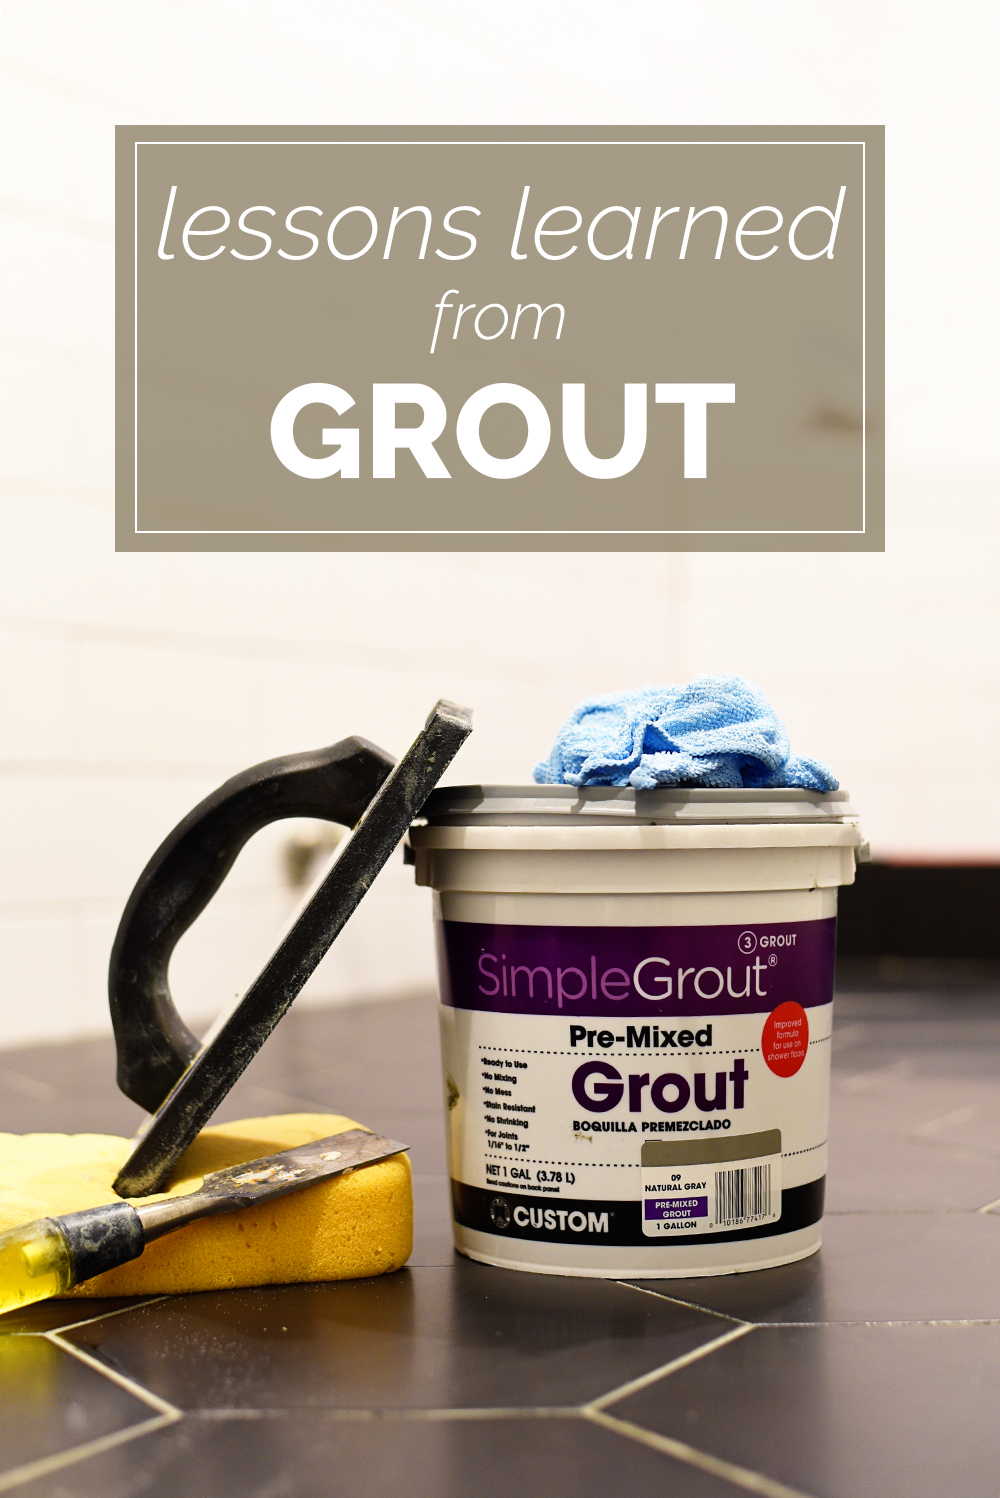 Lessons learned from grout